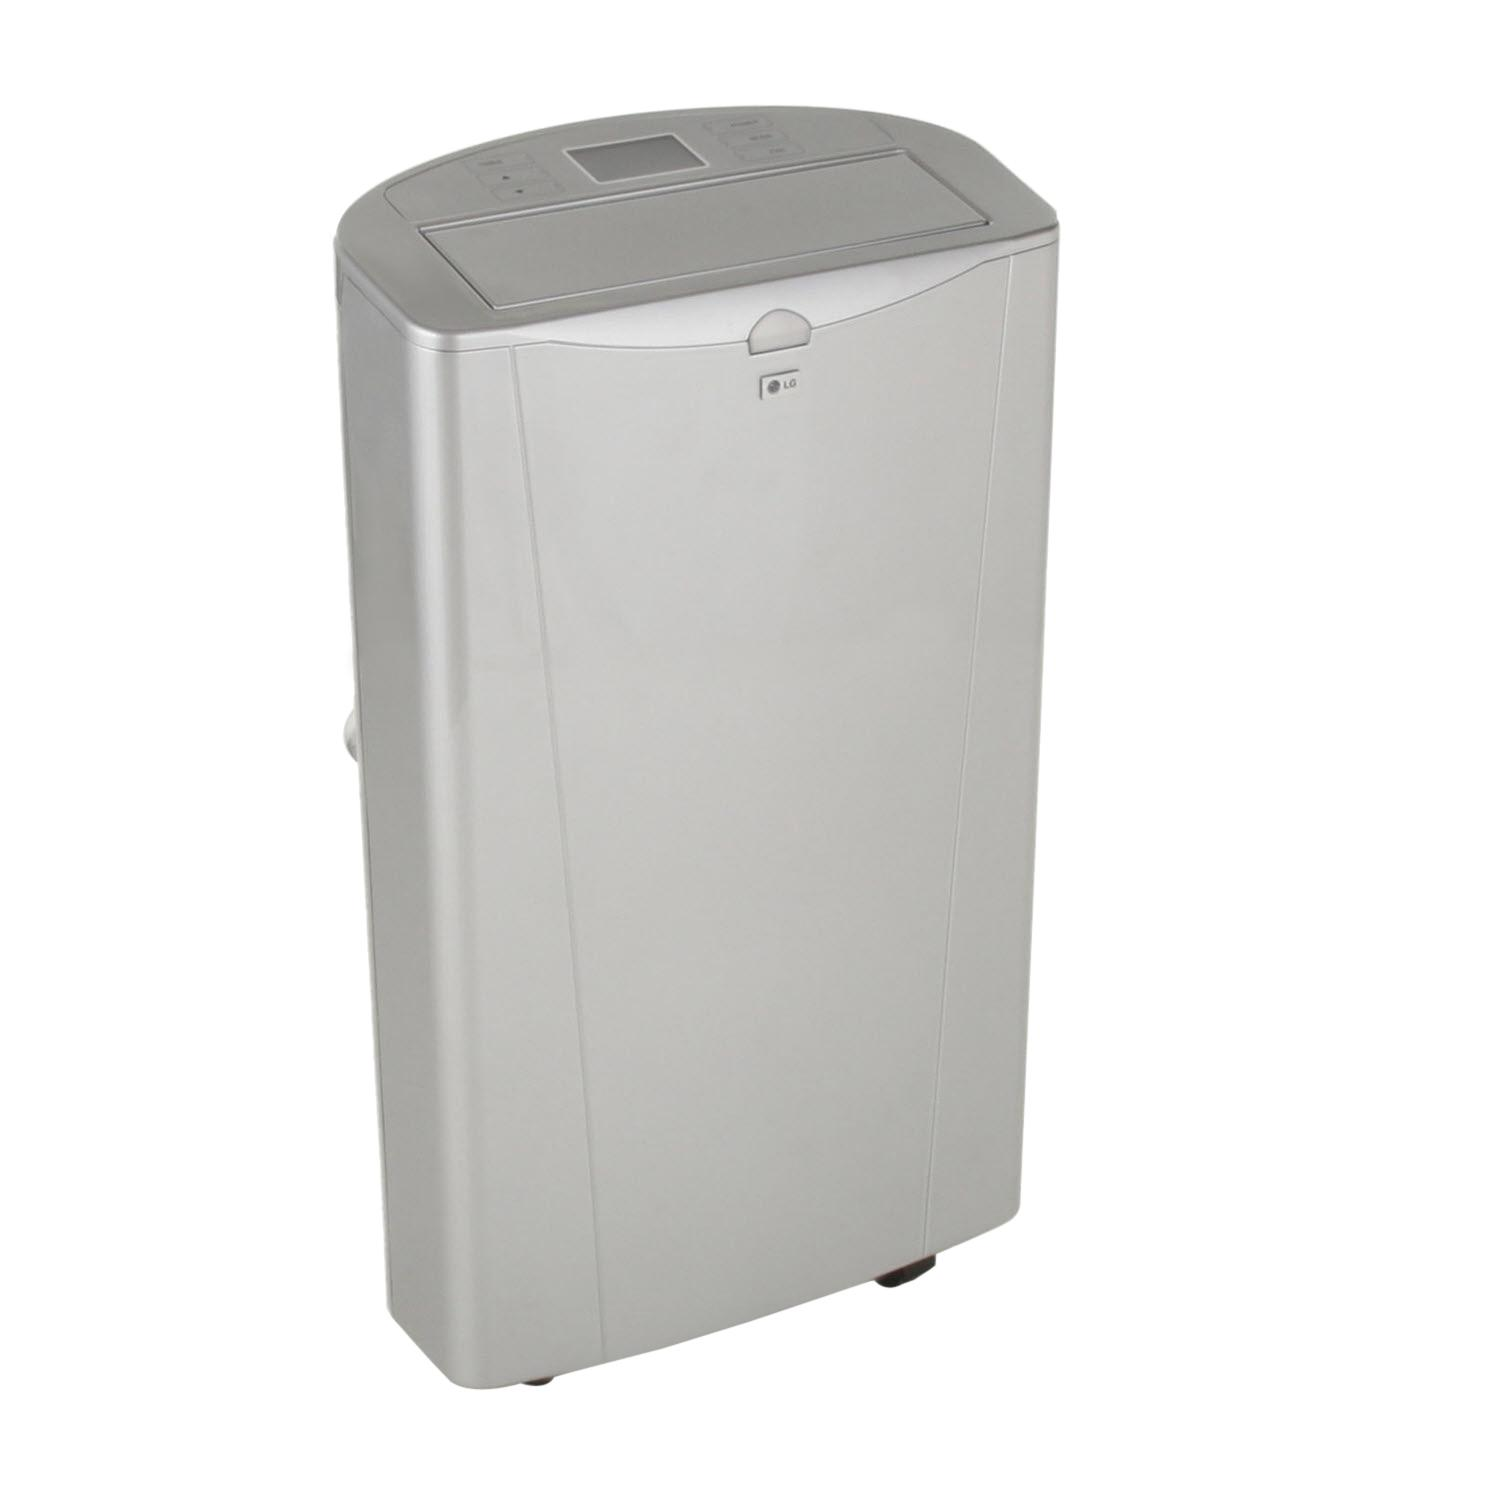 LP1411SHR Lg lp1411shr Portable Air Conditioners #302C28